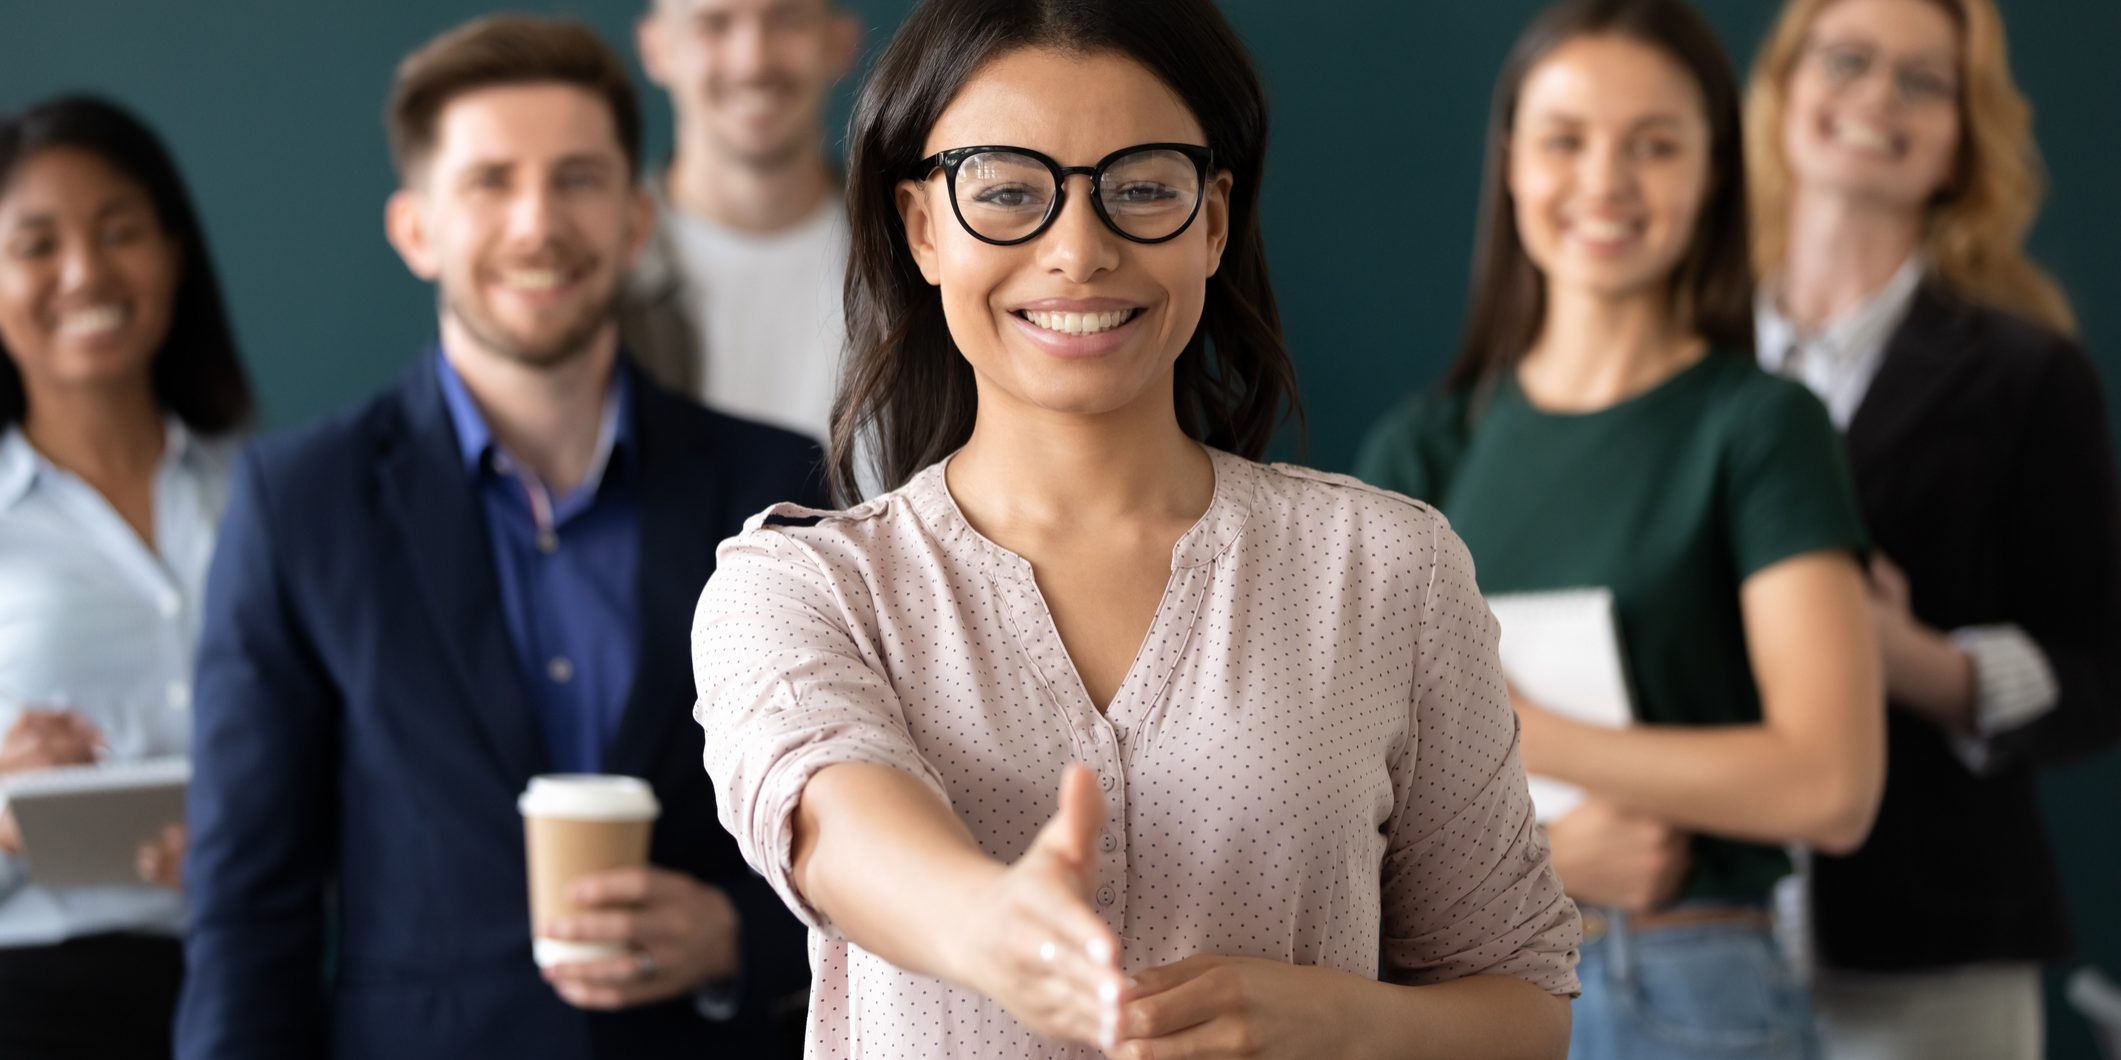 Mixed race woman sales manager stretch out hand introduces herself greeting shake hands client smiling look at camera pose indoors with diverse teammates. HR, job interview, business etiquette concept